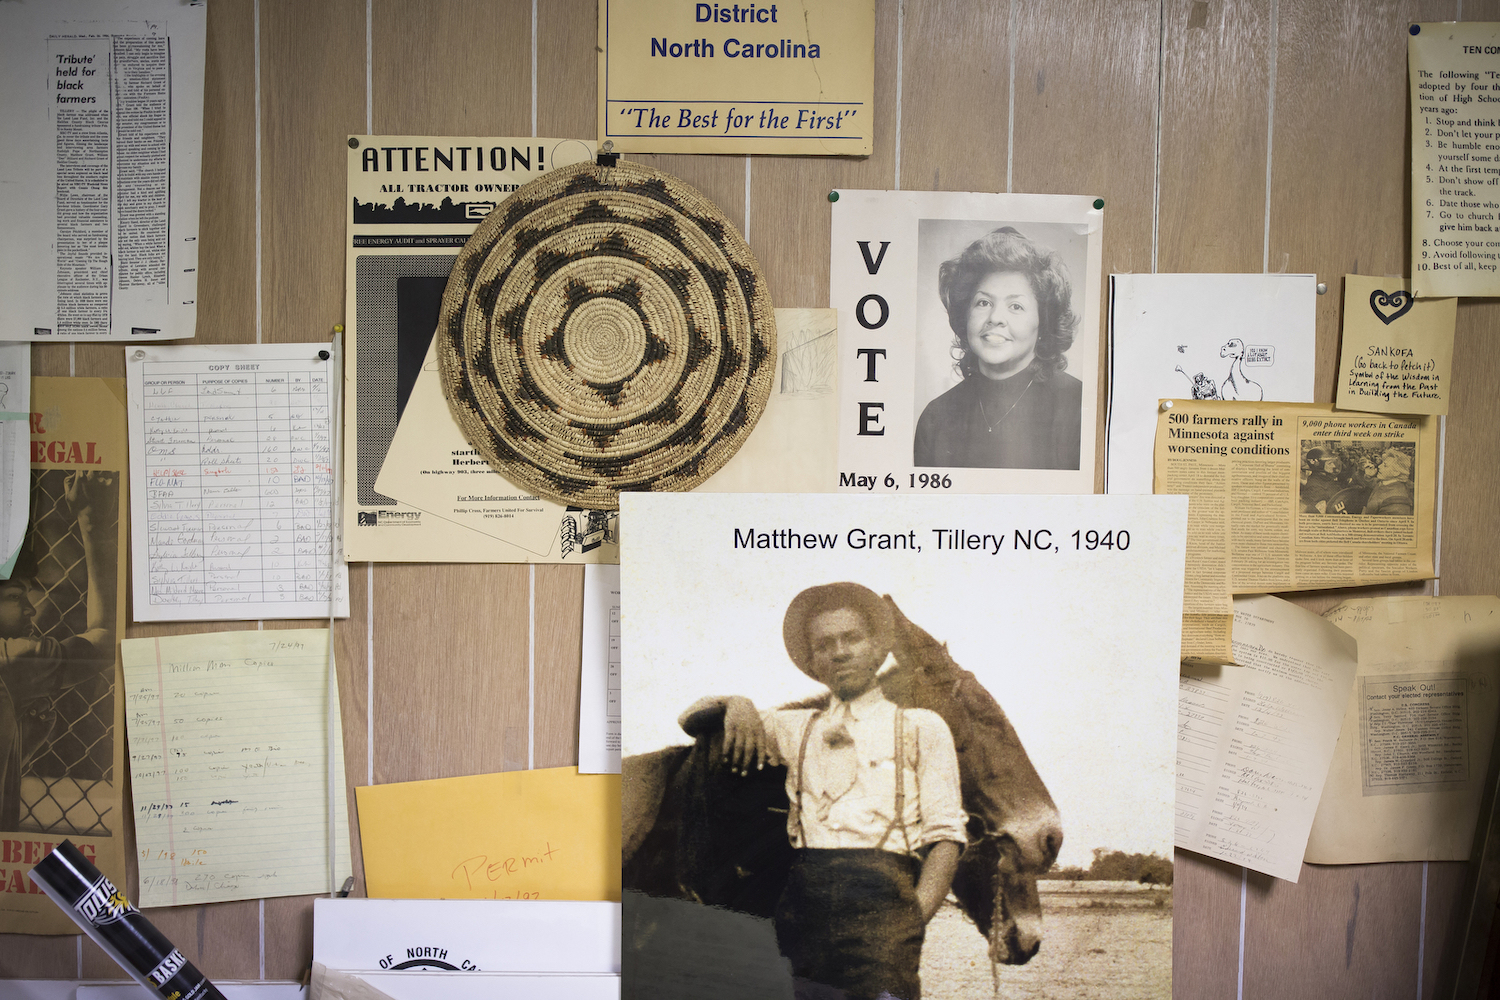 Papers from a wide variety of civil right and social justice campaigns cover the walls at the offices of the Concerned Citizens of Tillery in North Carolina